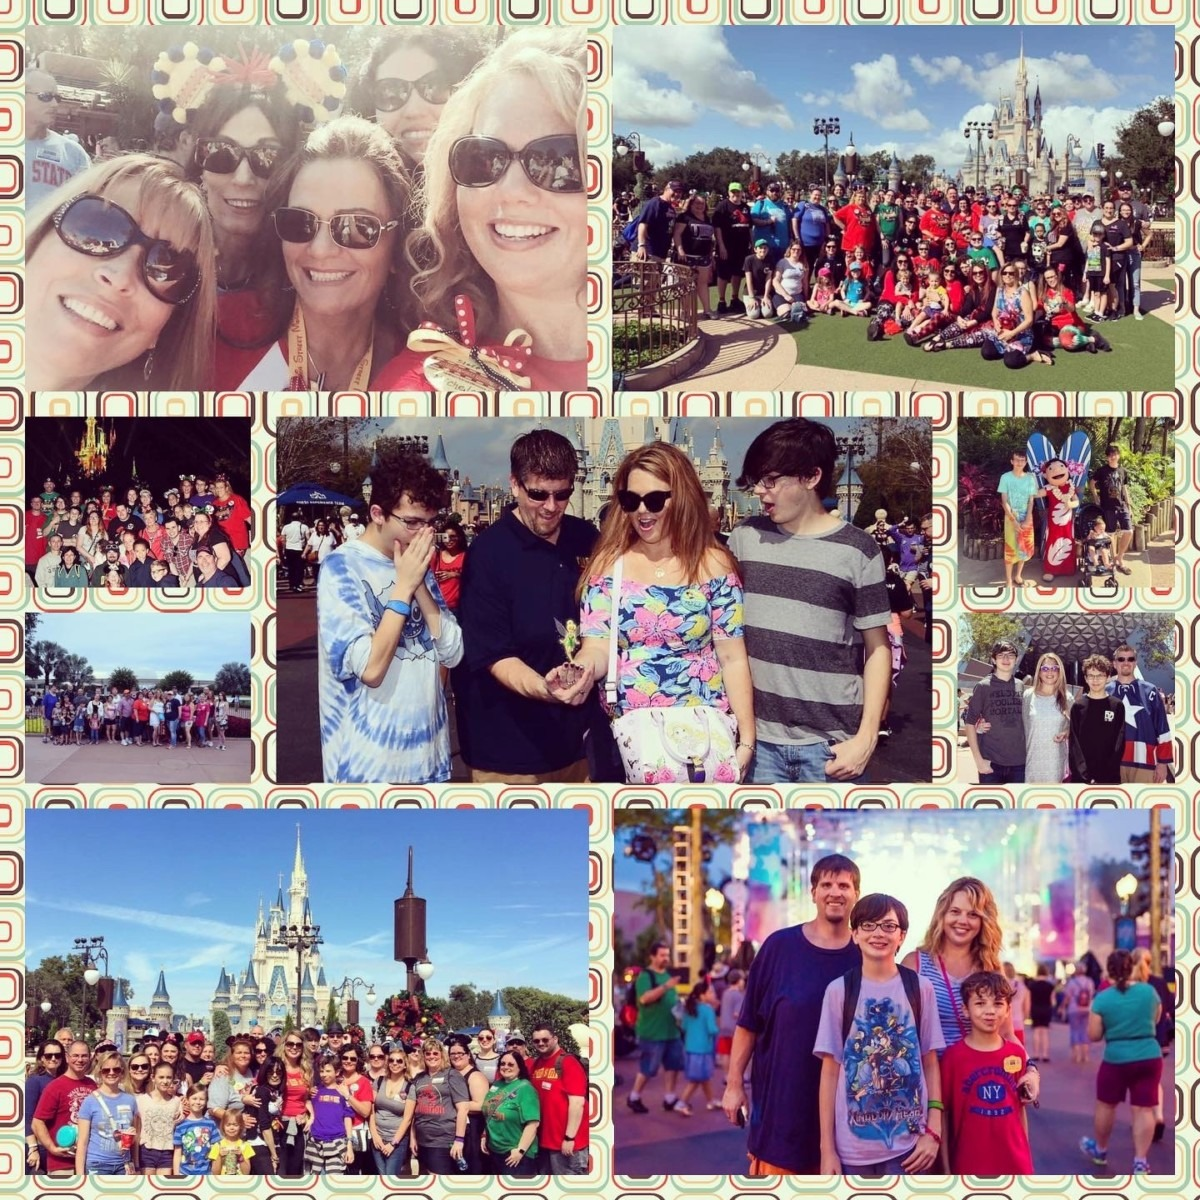 TMSM's Adventures in Florida Living- Six Years of (Mostly) Magic! 2